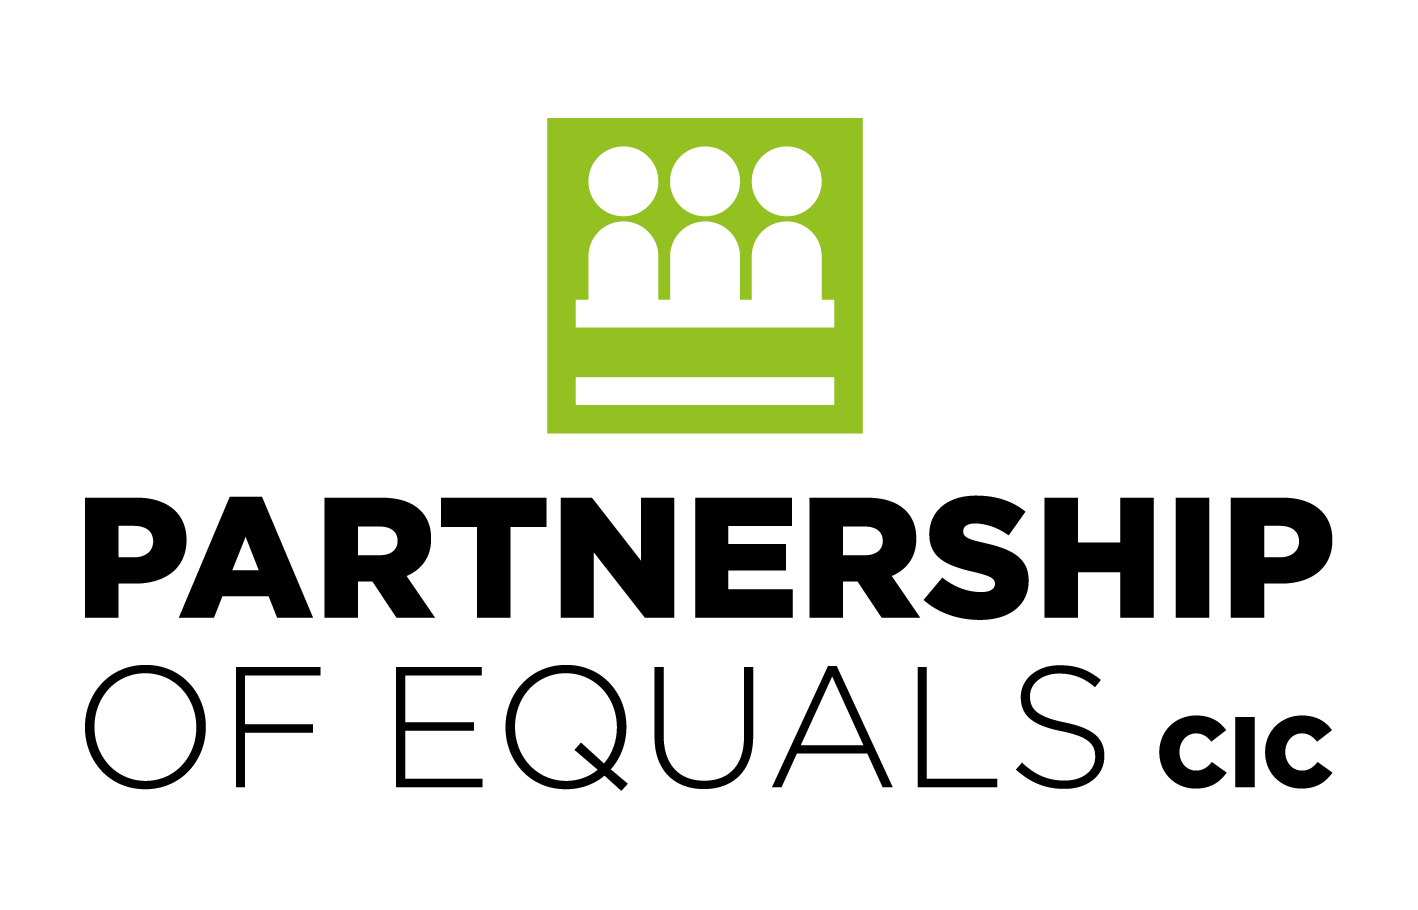 Partnership of Equals